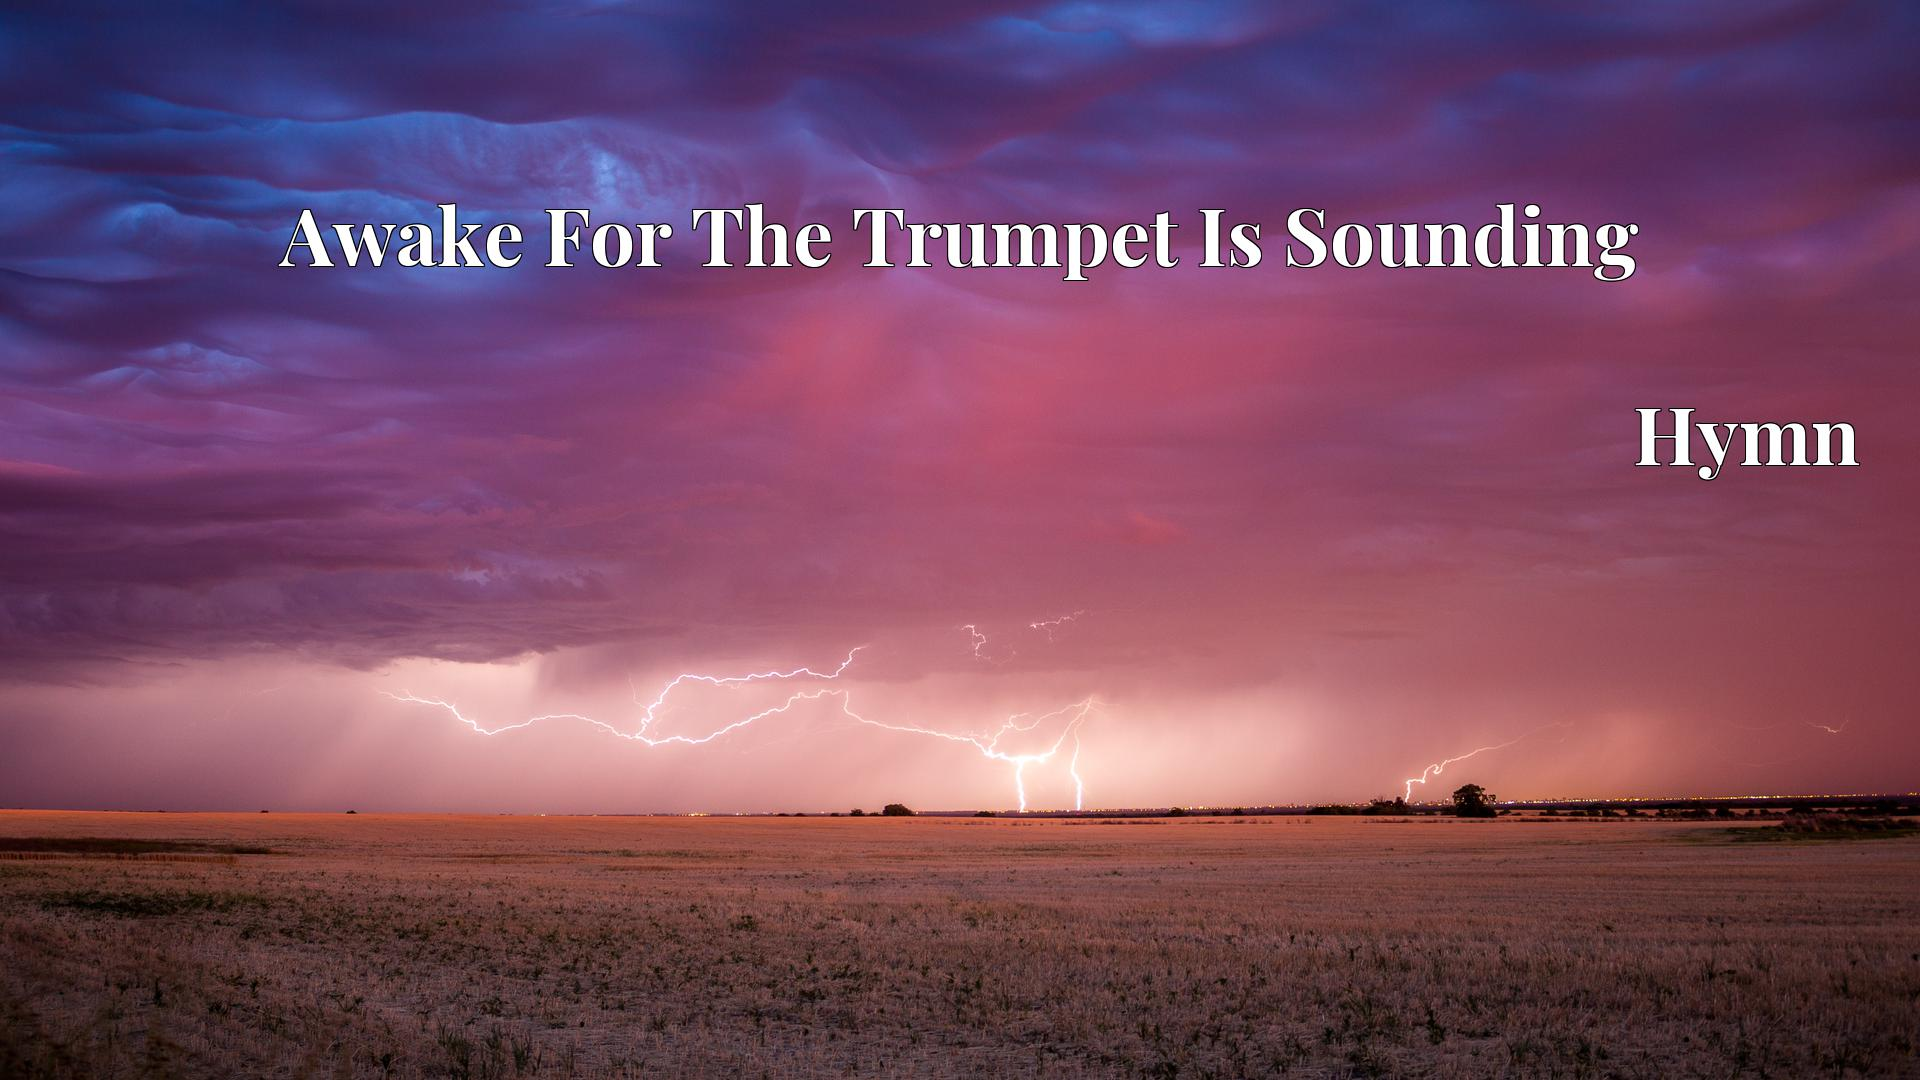 Awake For The Trumpet Is Sounding - Hymn